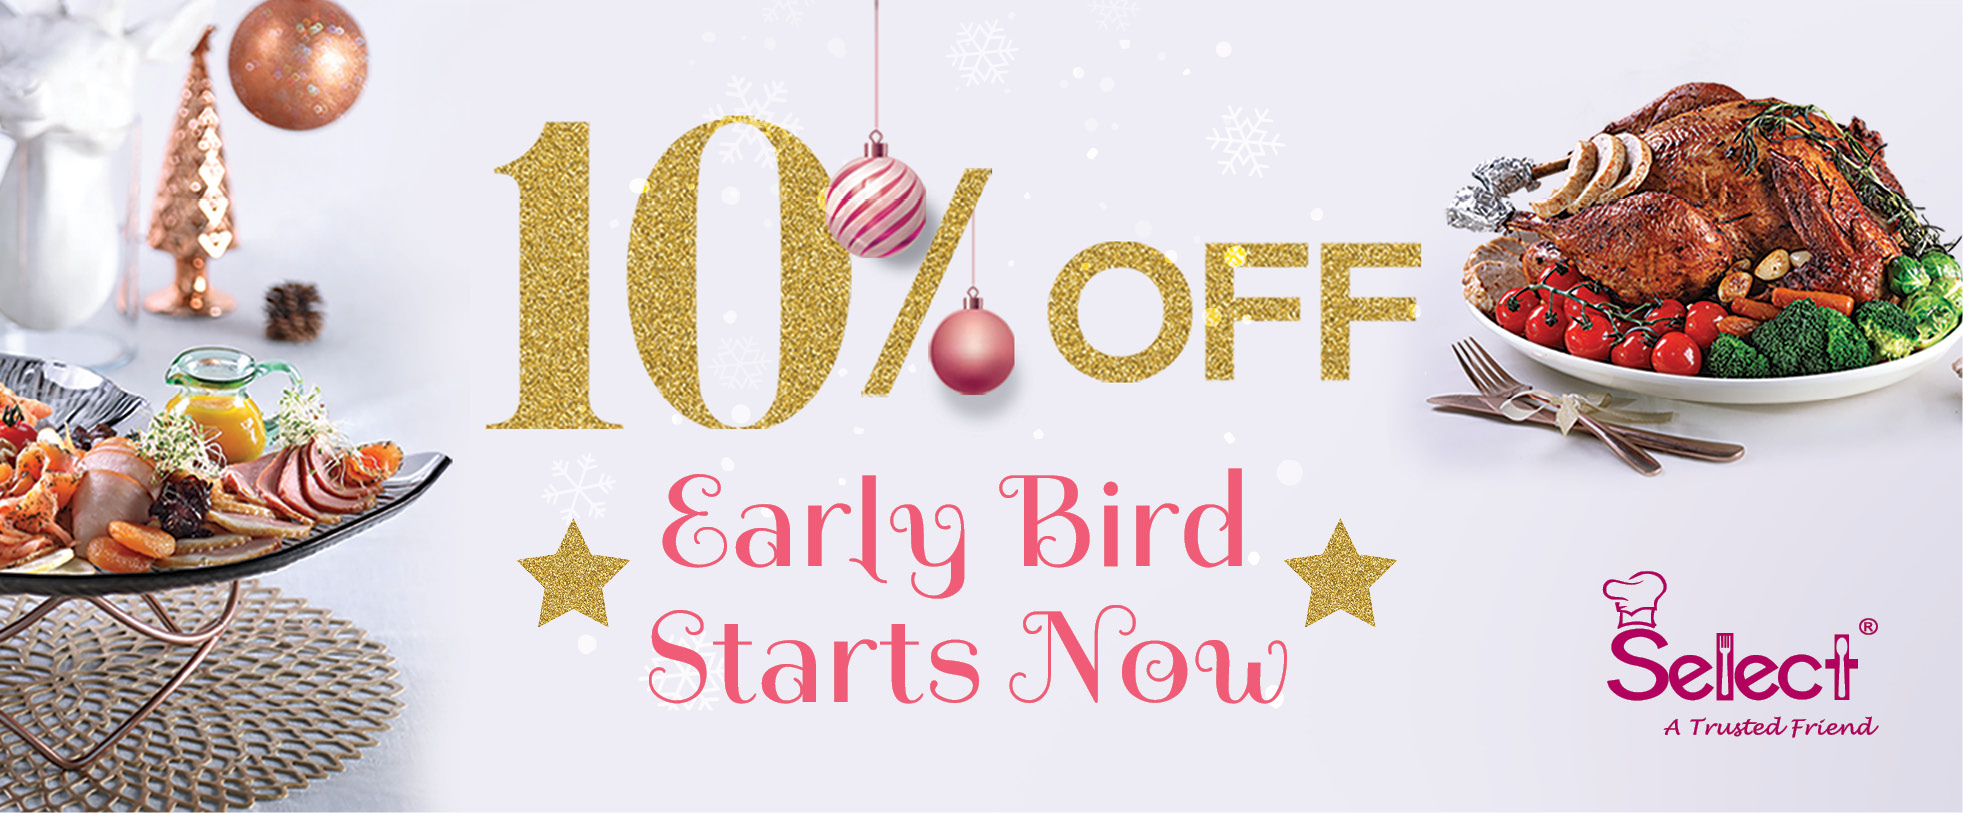 SF1910006-Select Xmas 10% Off Early Bird Promo Web Banner FA